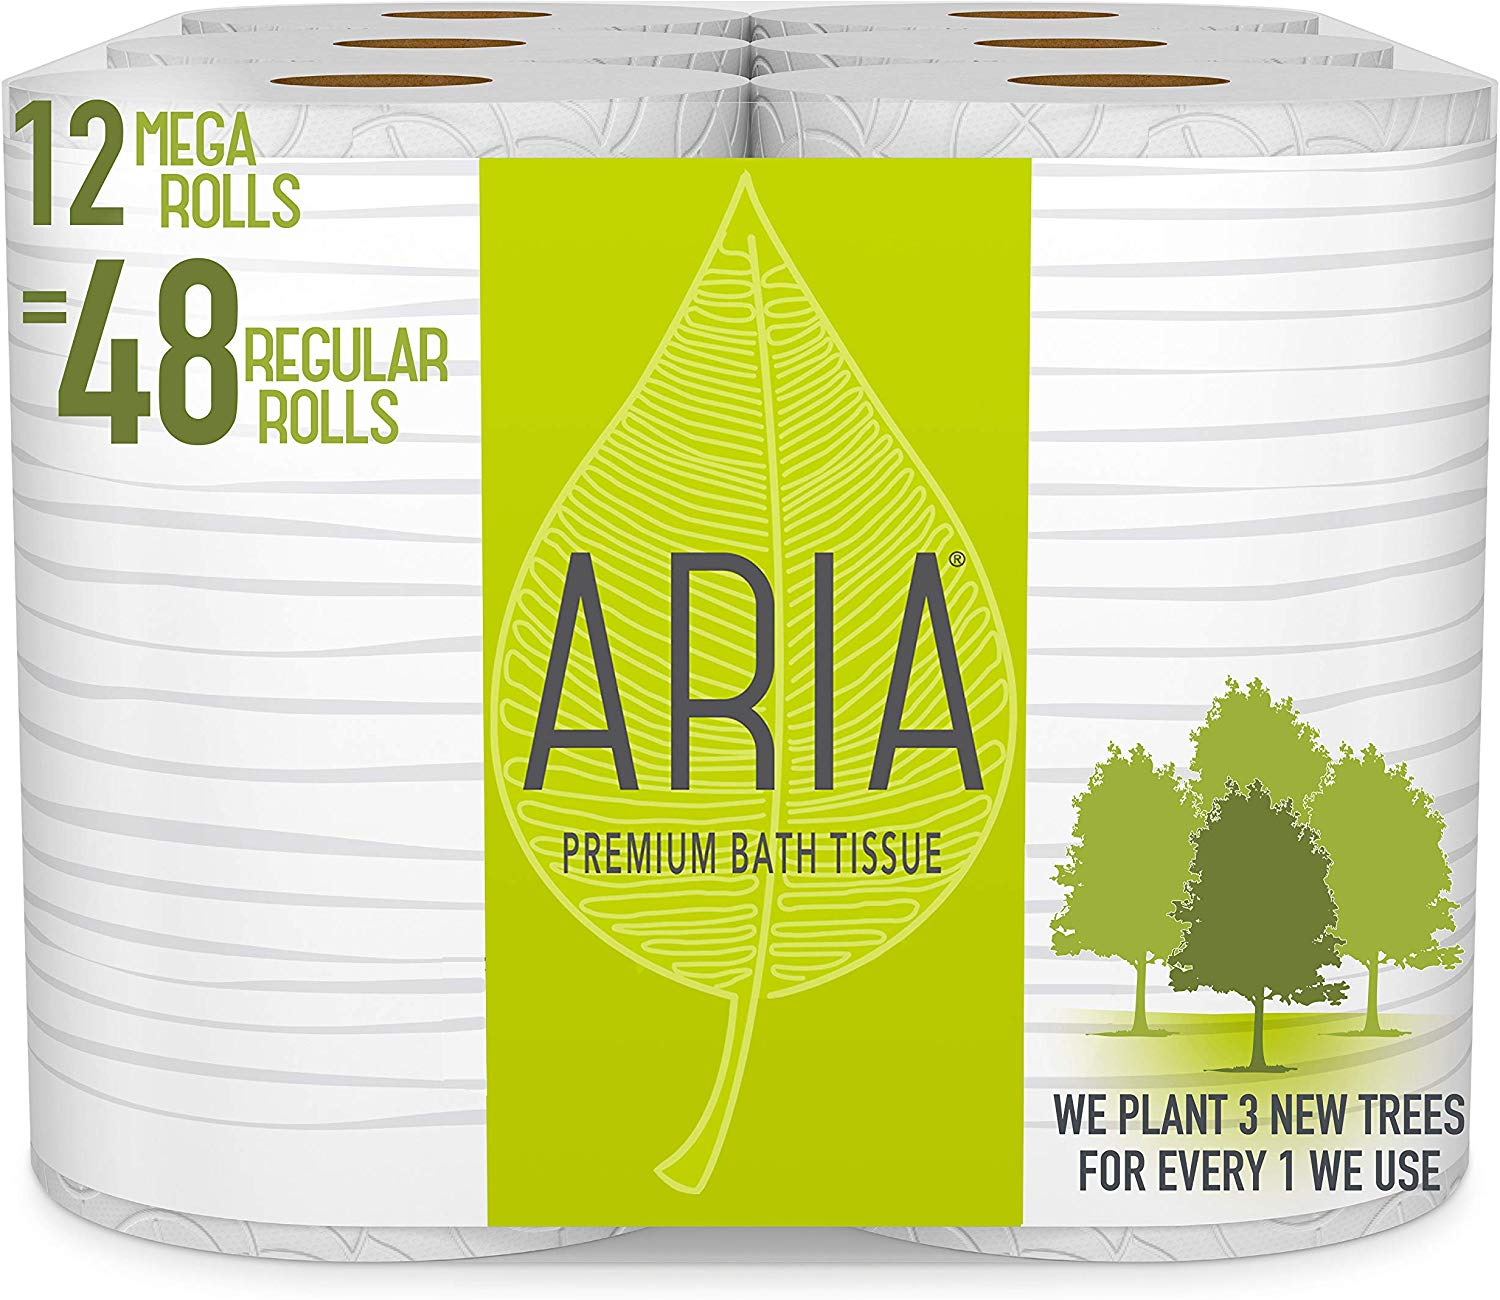 Aria Premium | Biodegradable Toilet Papers